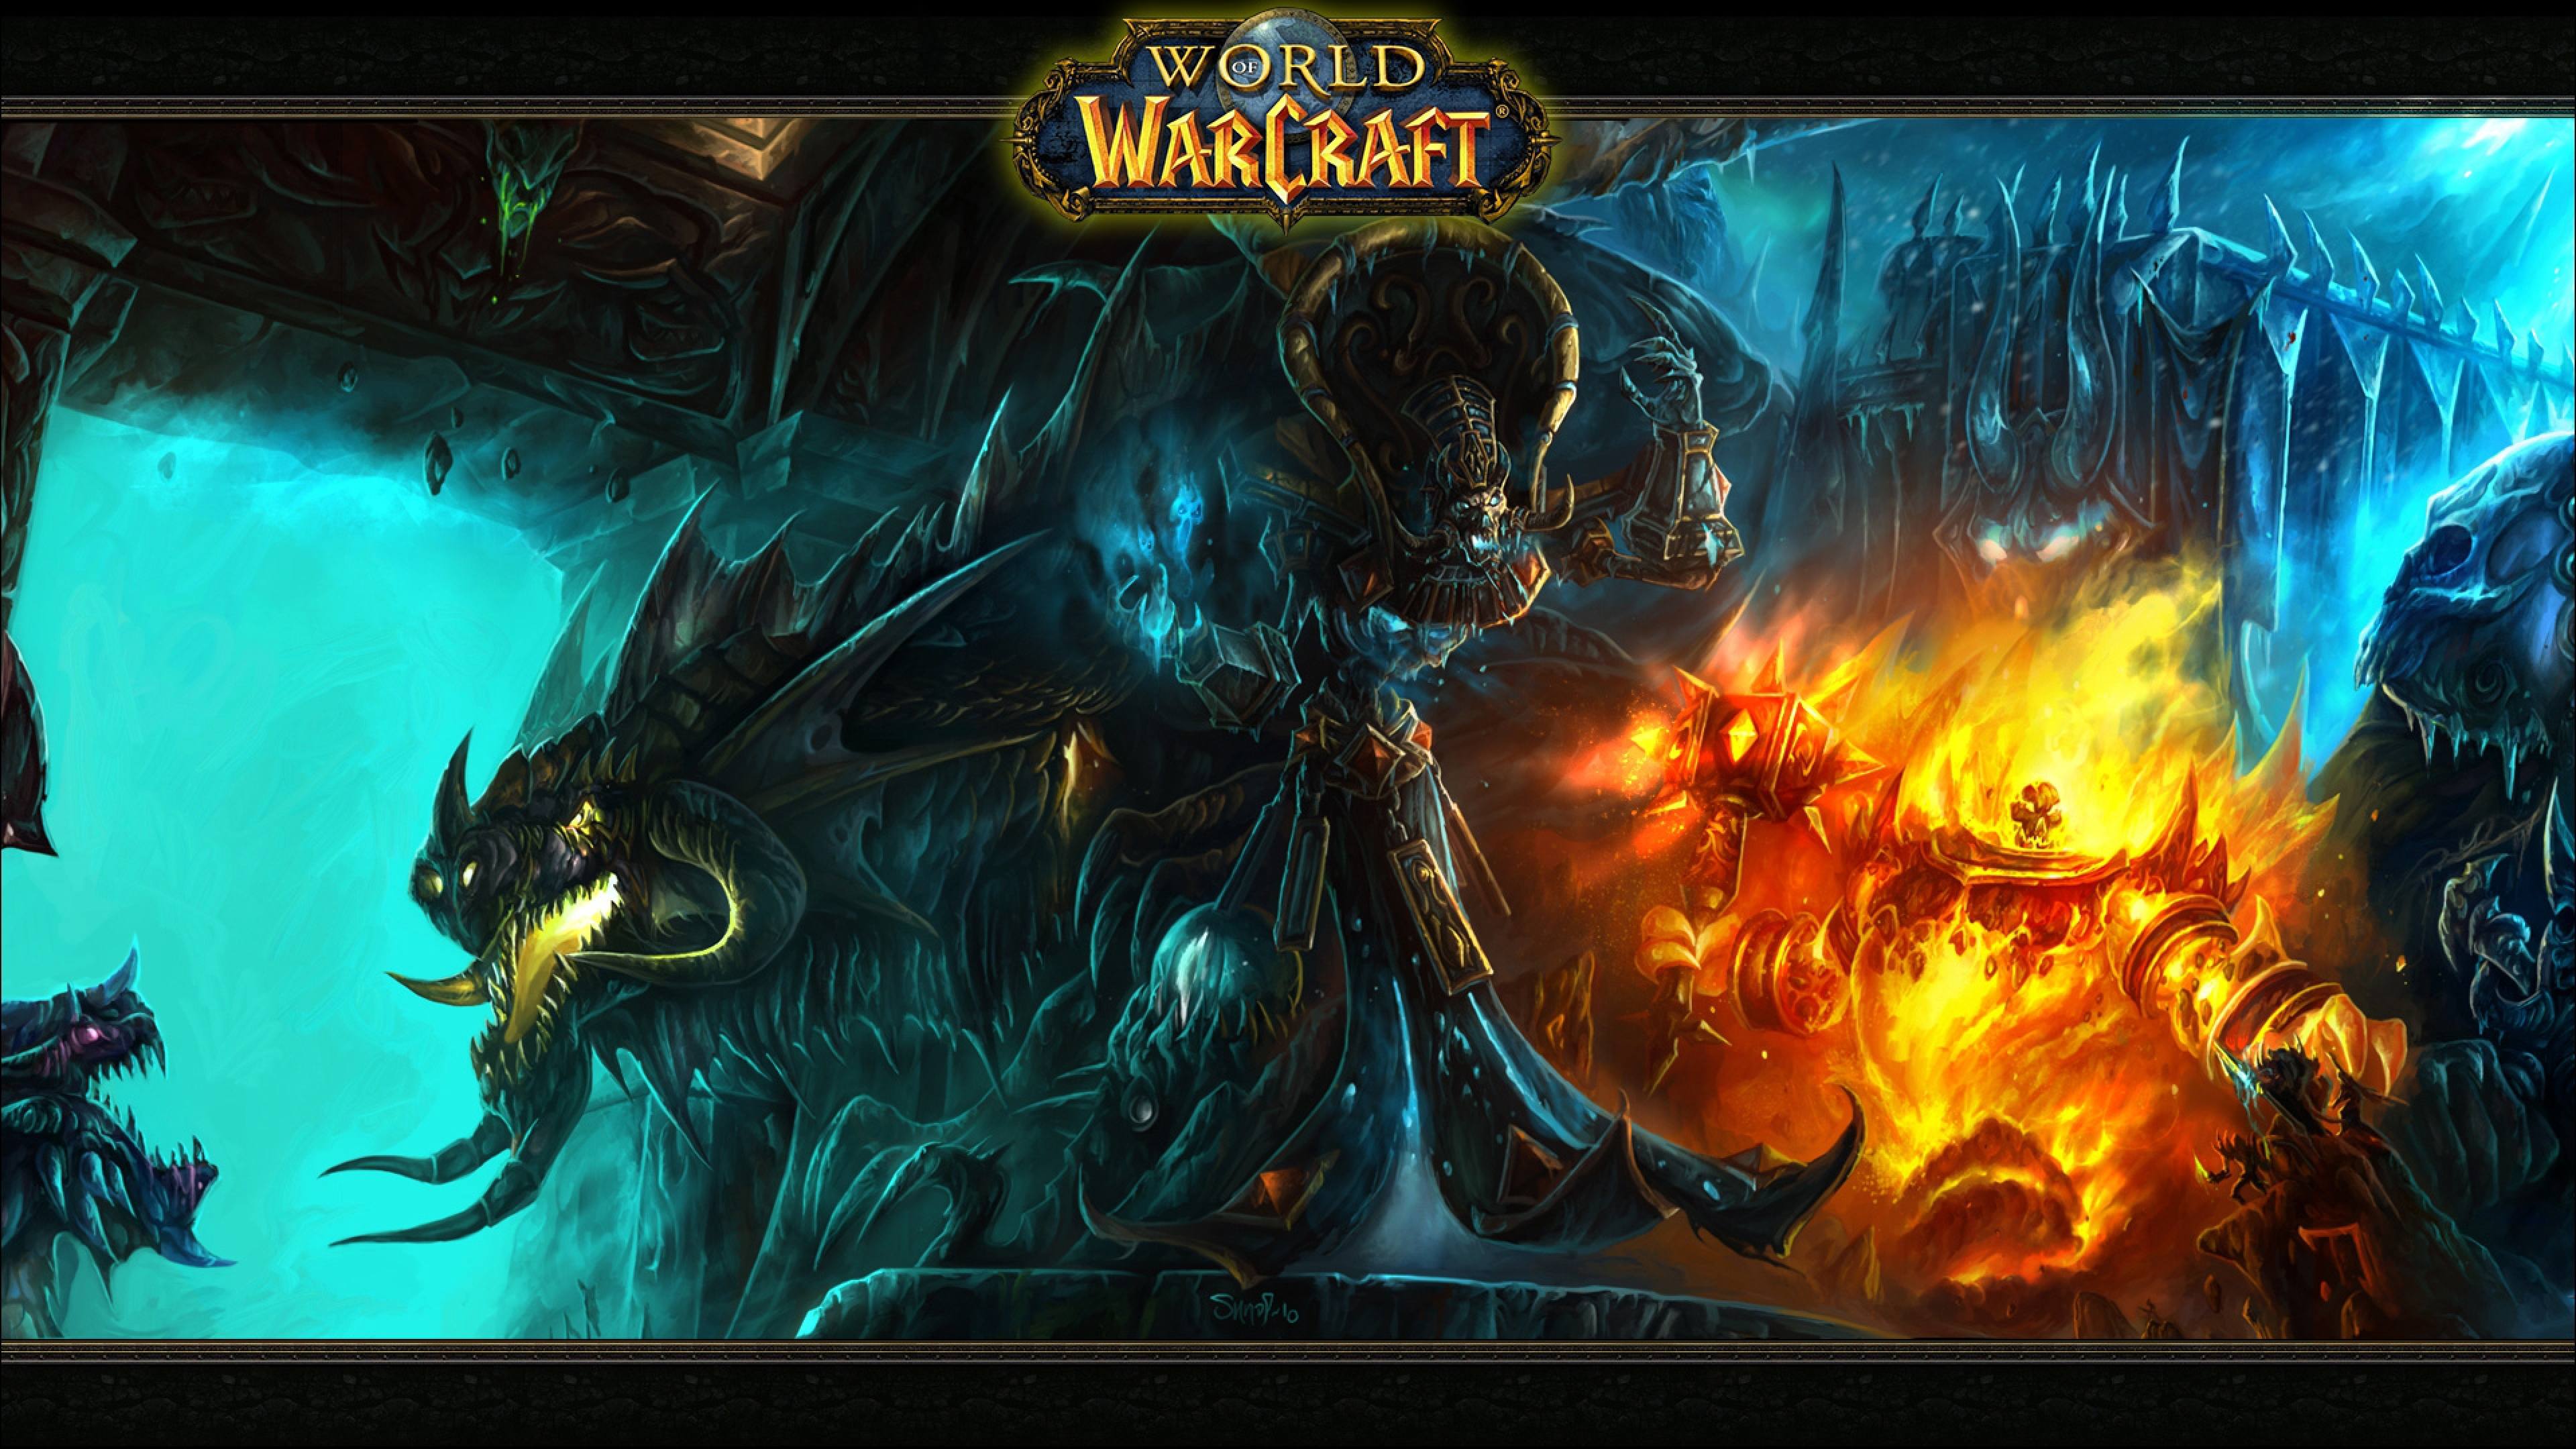 50 World Of Warcraft Wallpaper 4k On Wallpapersafari